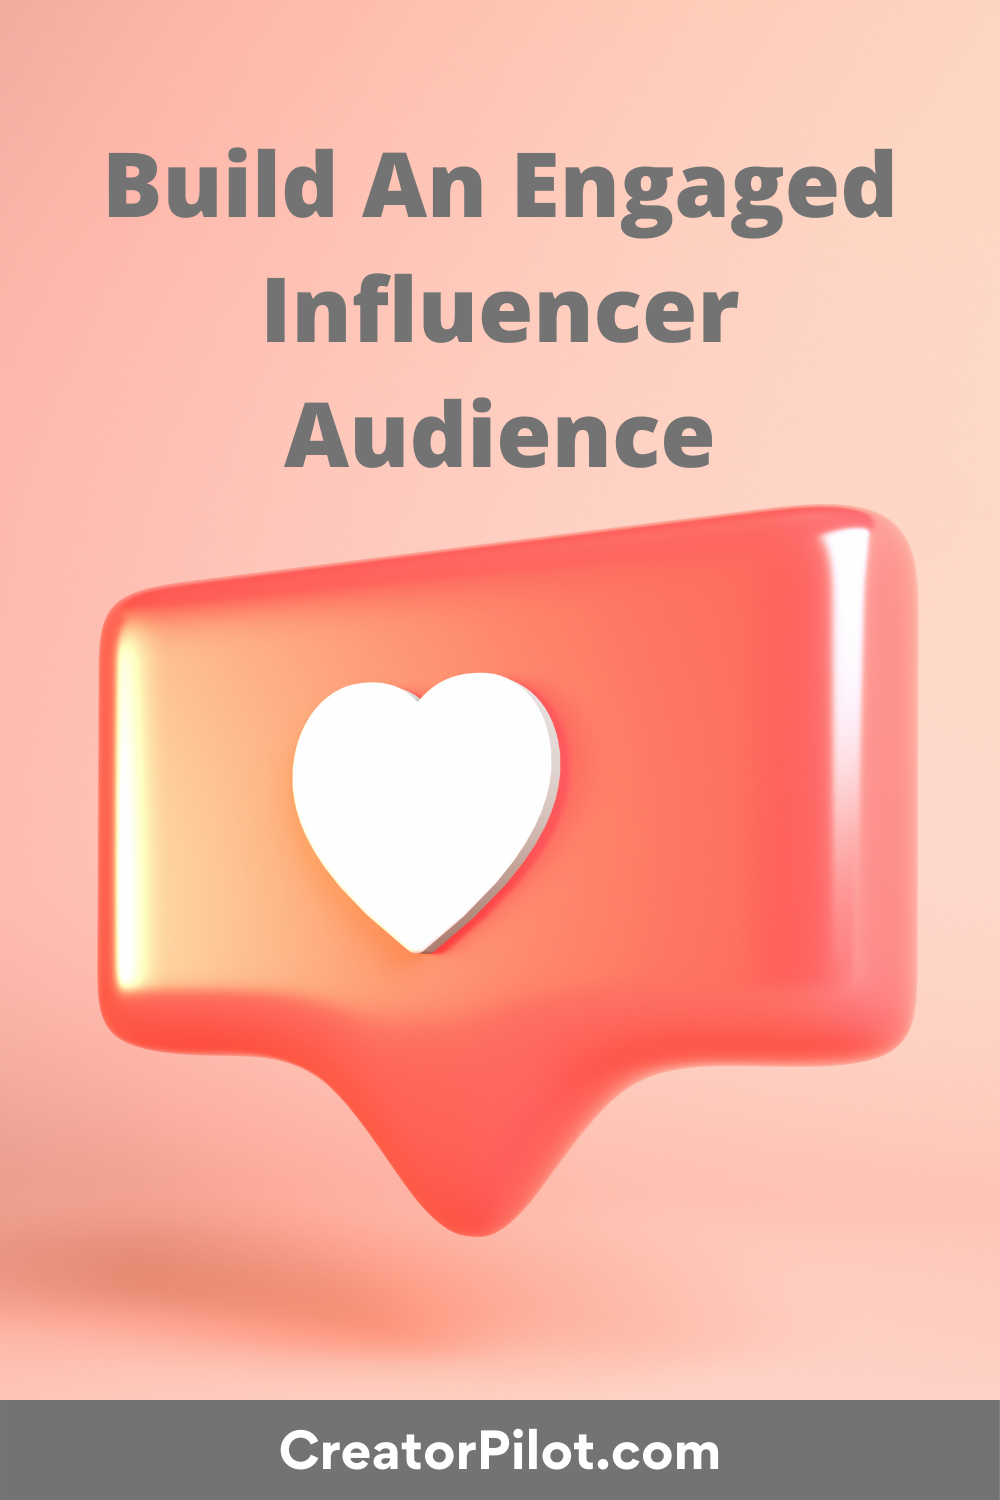 build an engaged Influencer audience